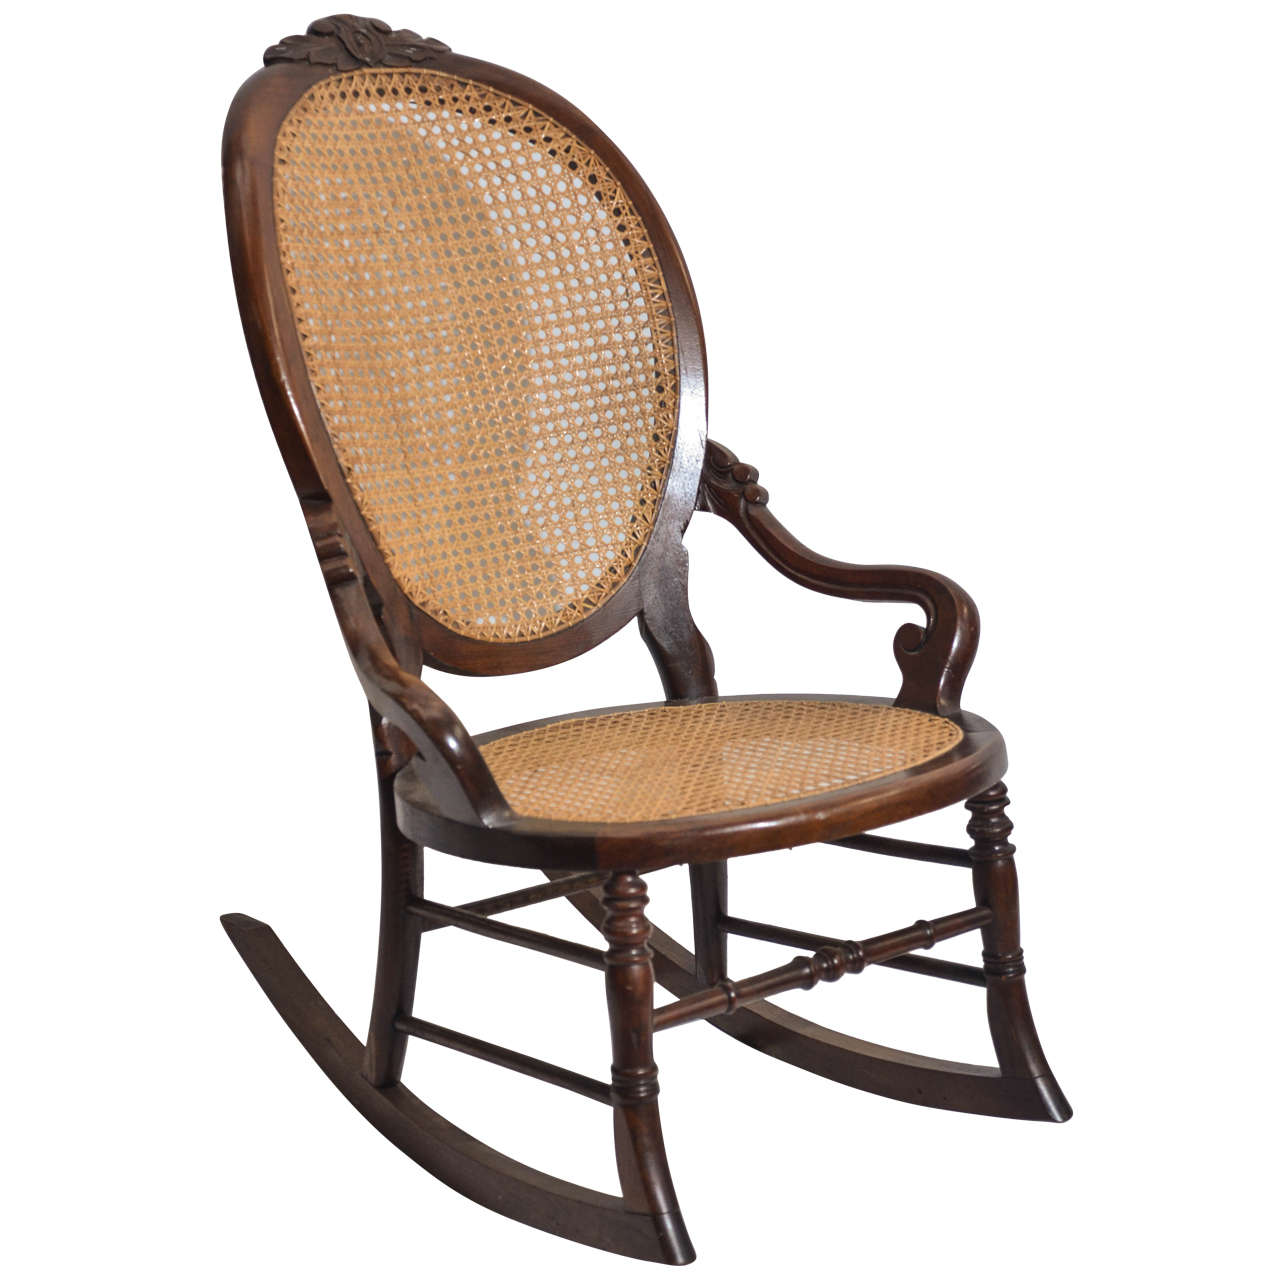 Rockin Chairs Victorian Walnut Ladys Rocking Chair For Sale At 1stdibs